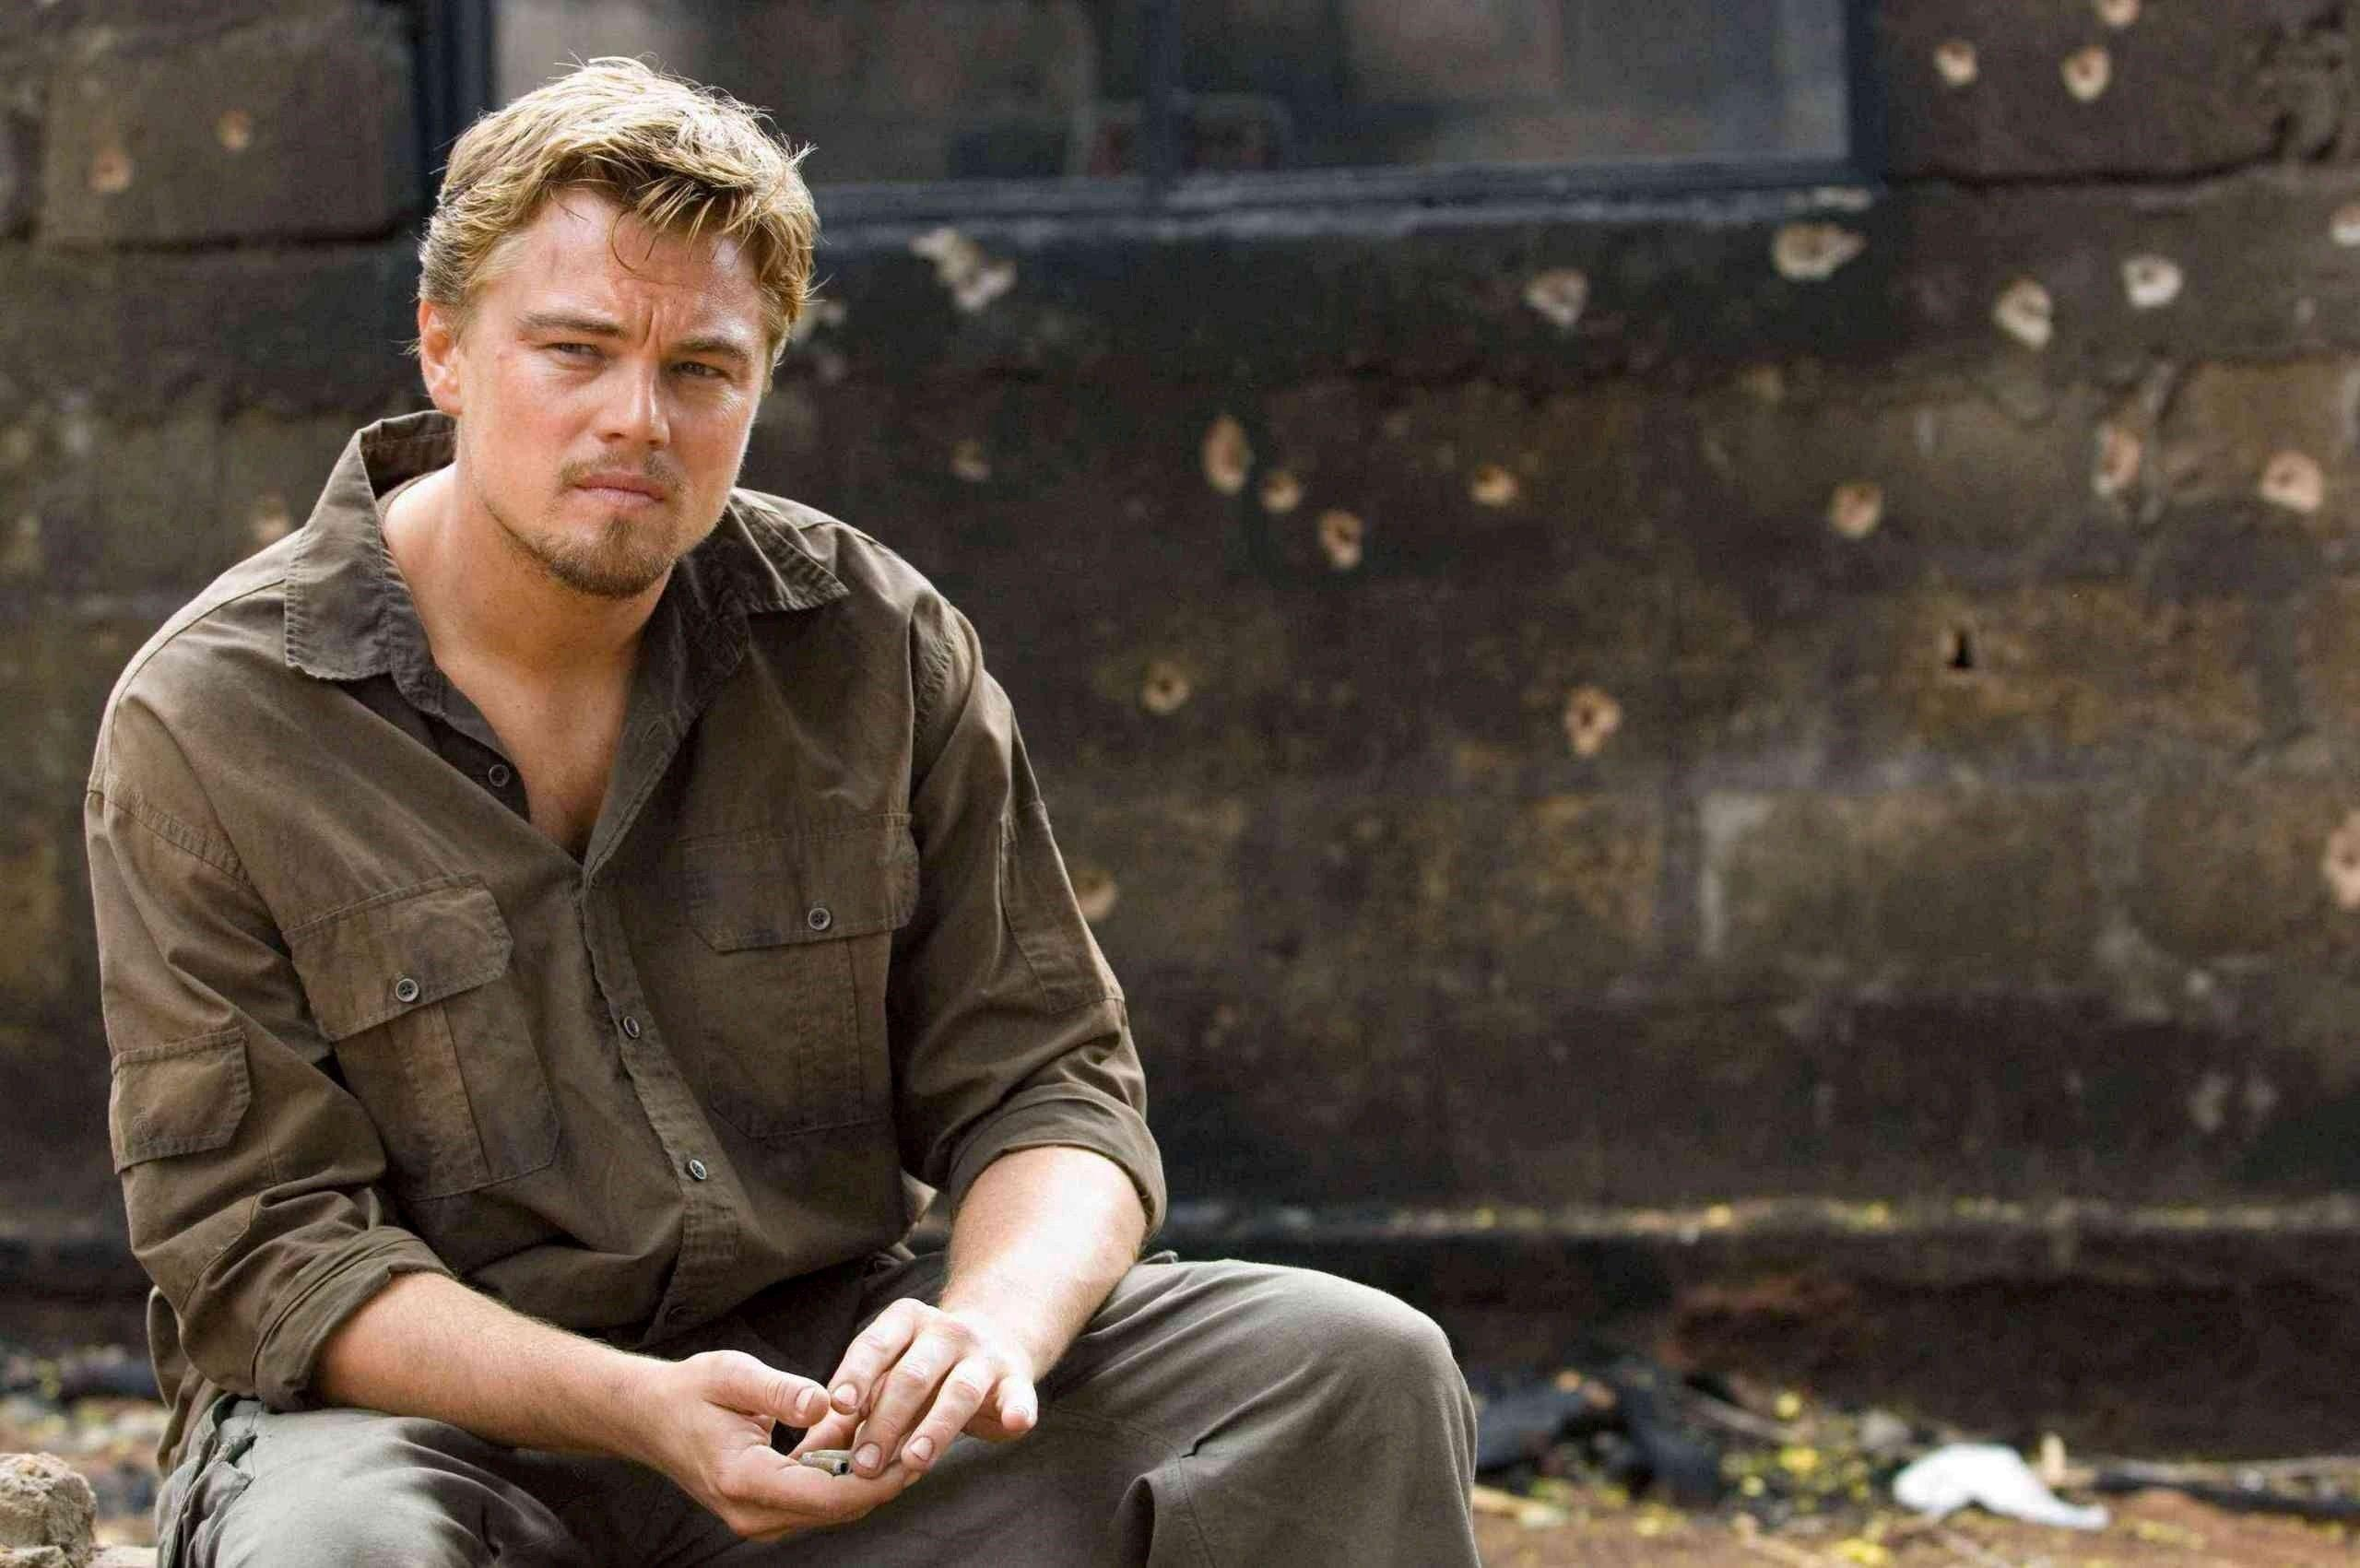 Leonardo DiCaprio Wallpapers Free Download HD Hollywood Actors Image